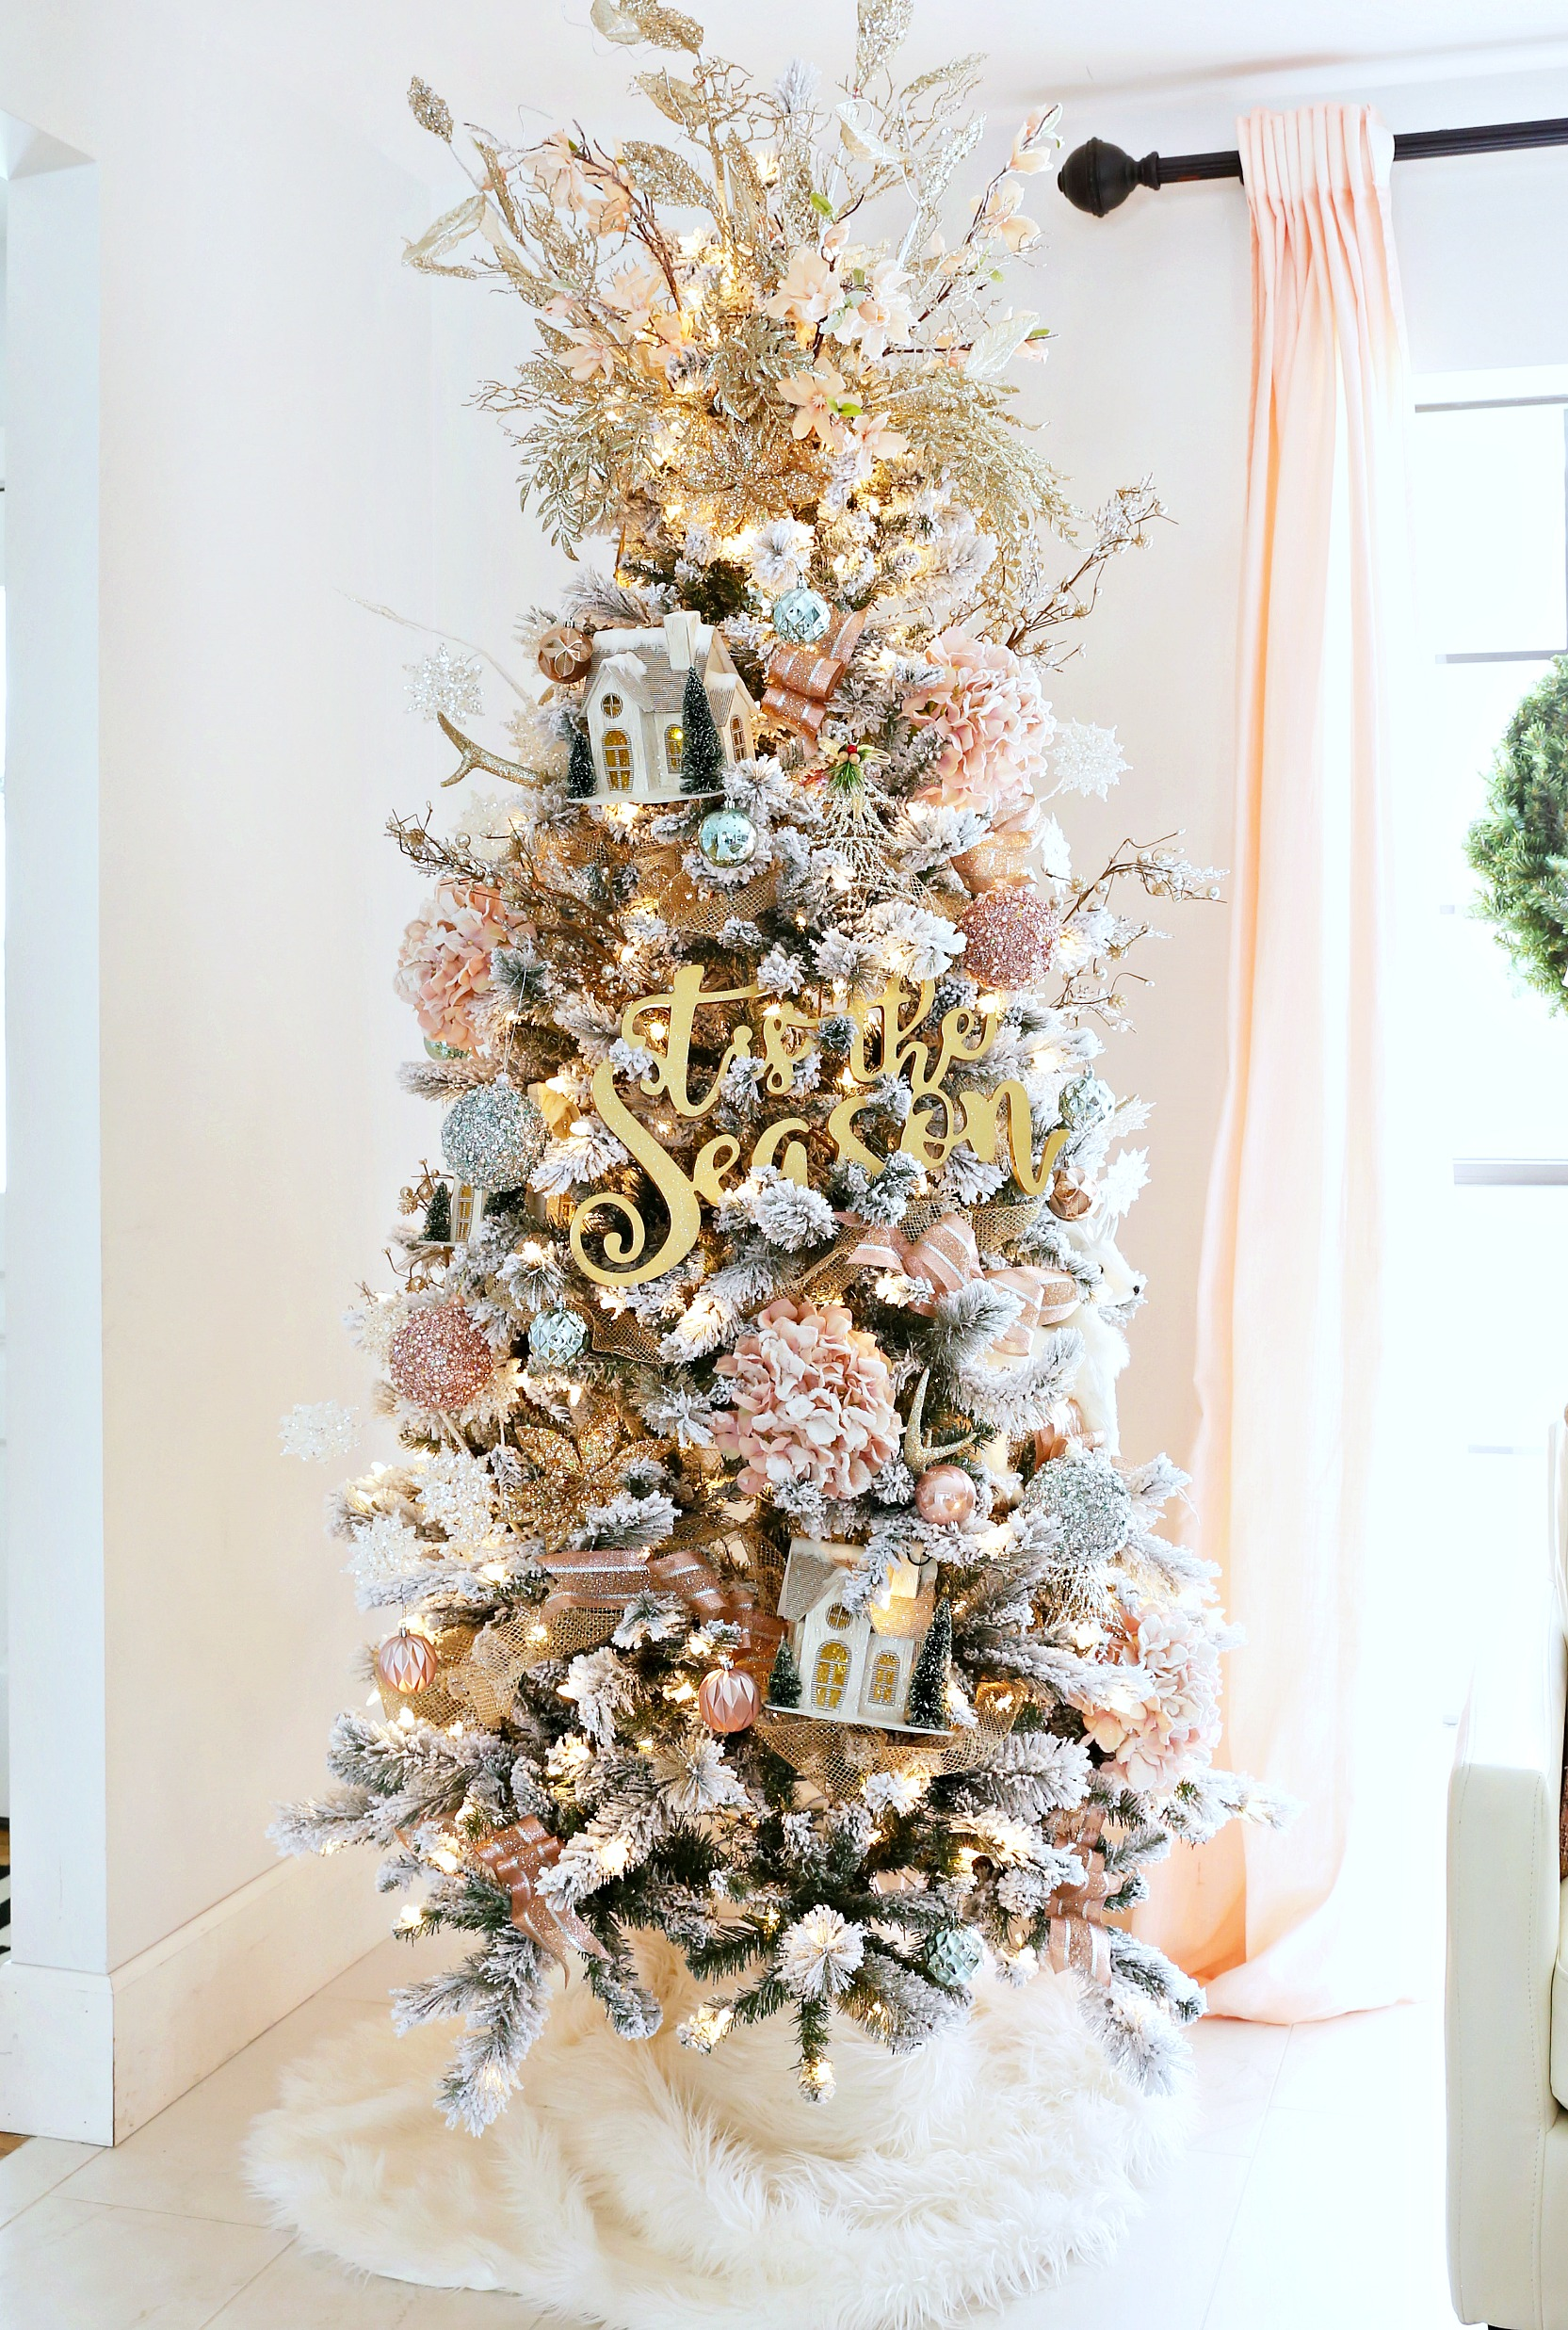 Christmas Tree Decorations Ideas.12 Christmas Tree Decorating Ideas